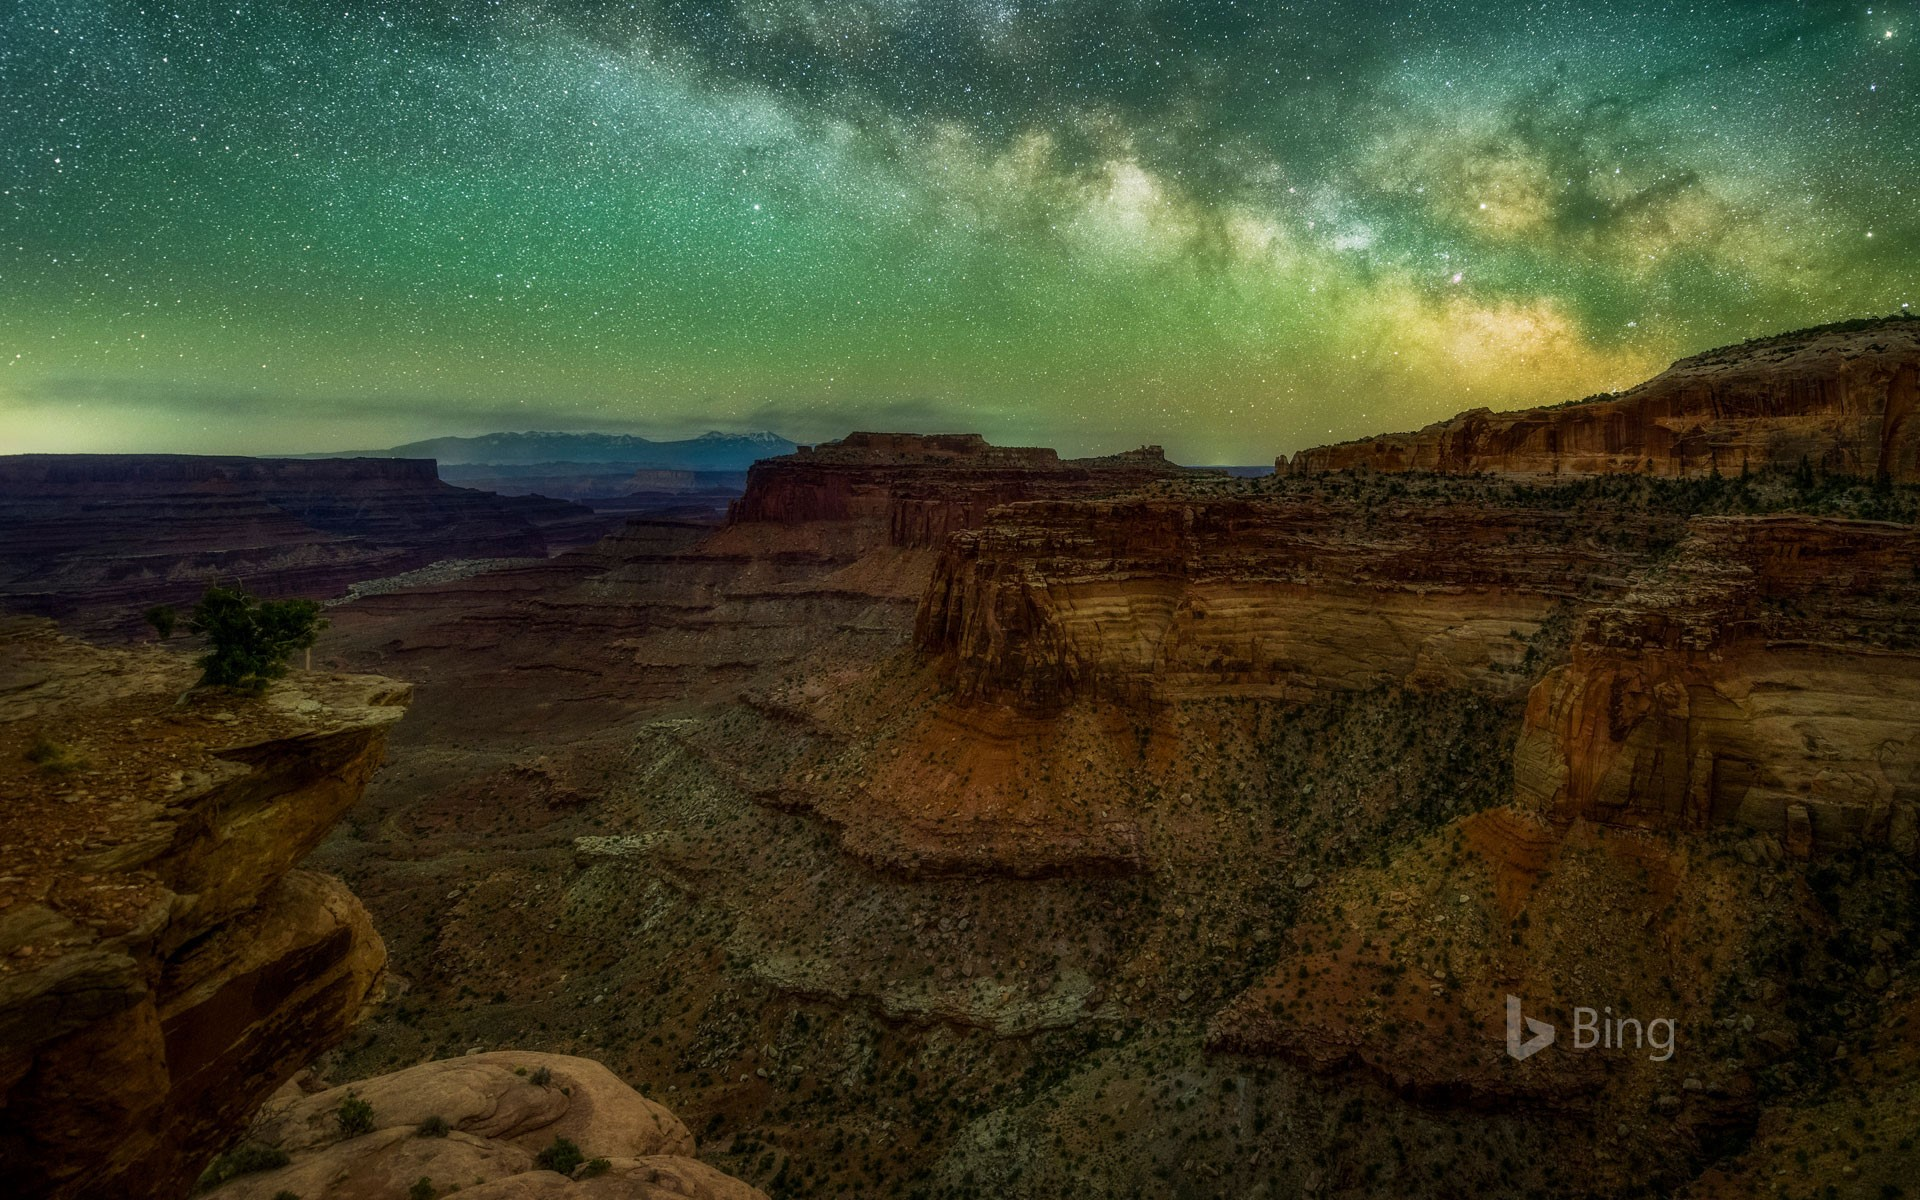 The Milky Way seen from Canyonlands National Park in Utah